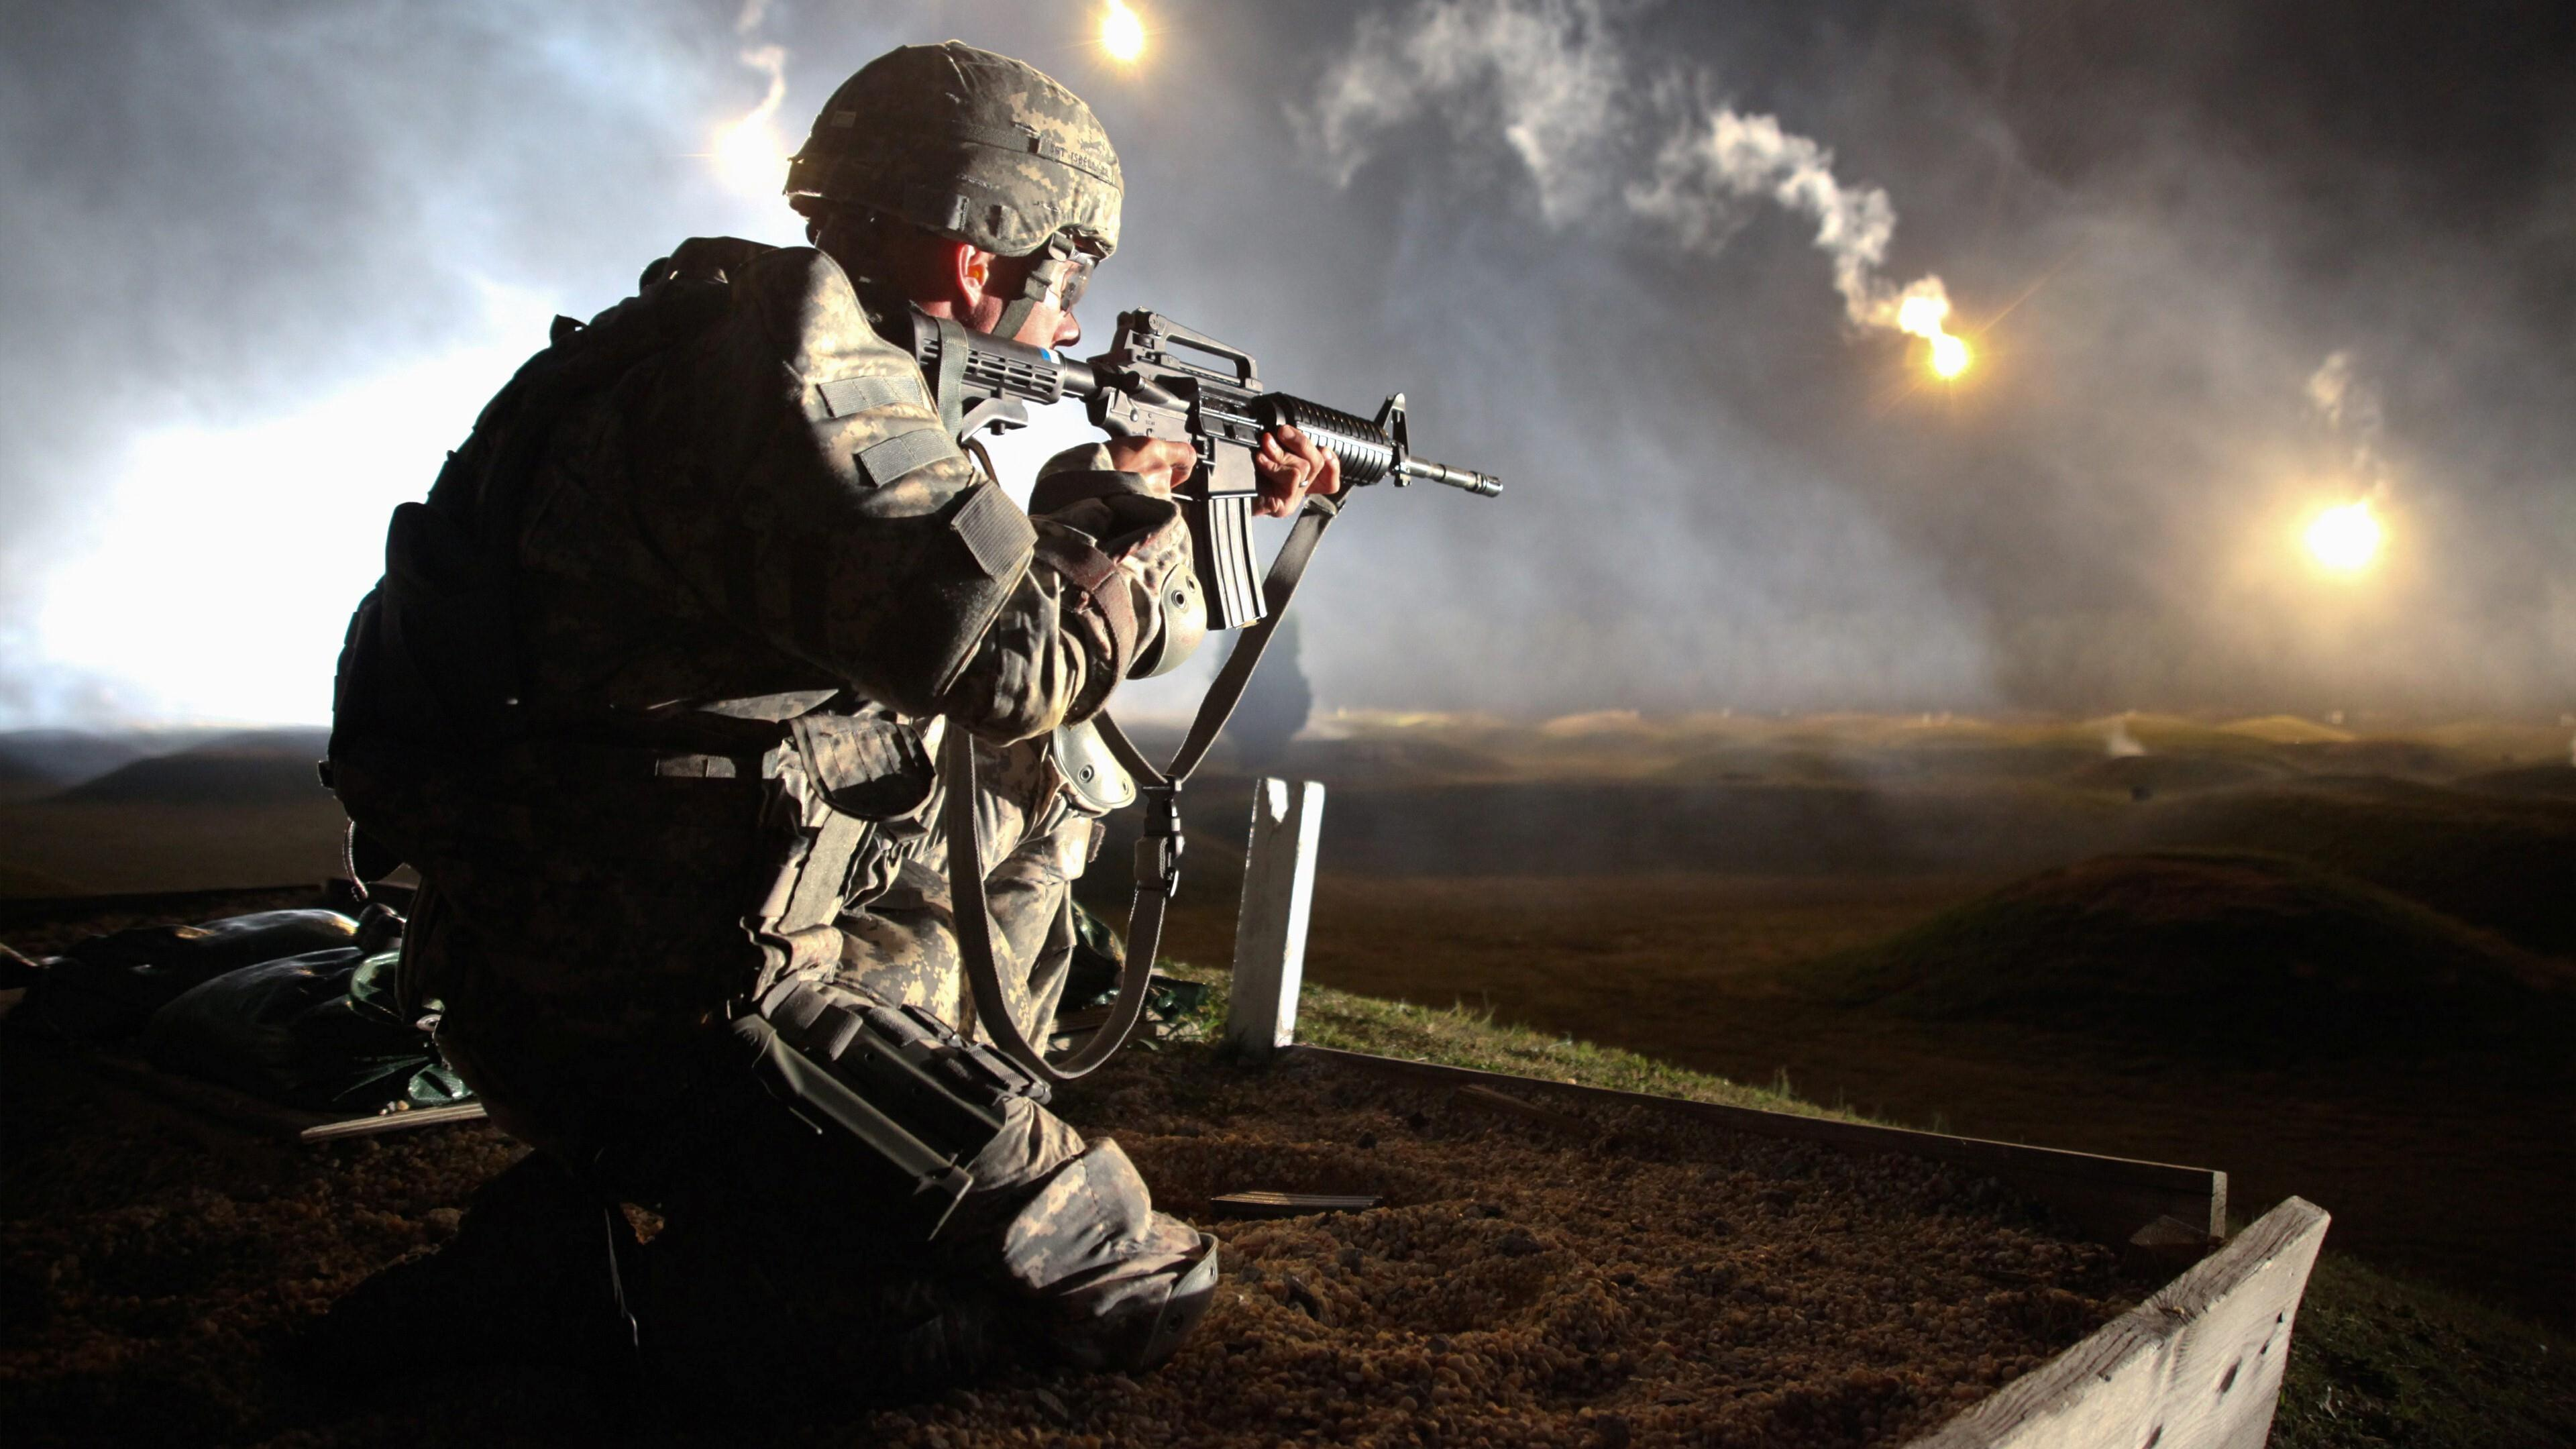 3840x2160 Army Soldier Petroling at Night Photo